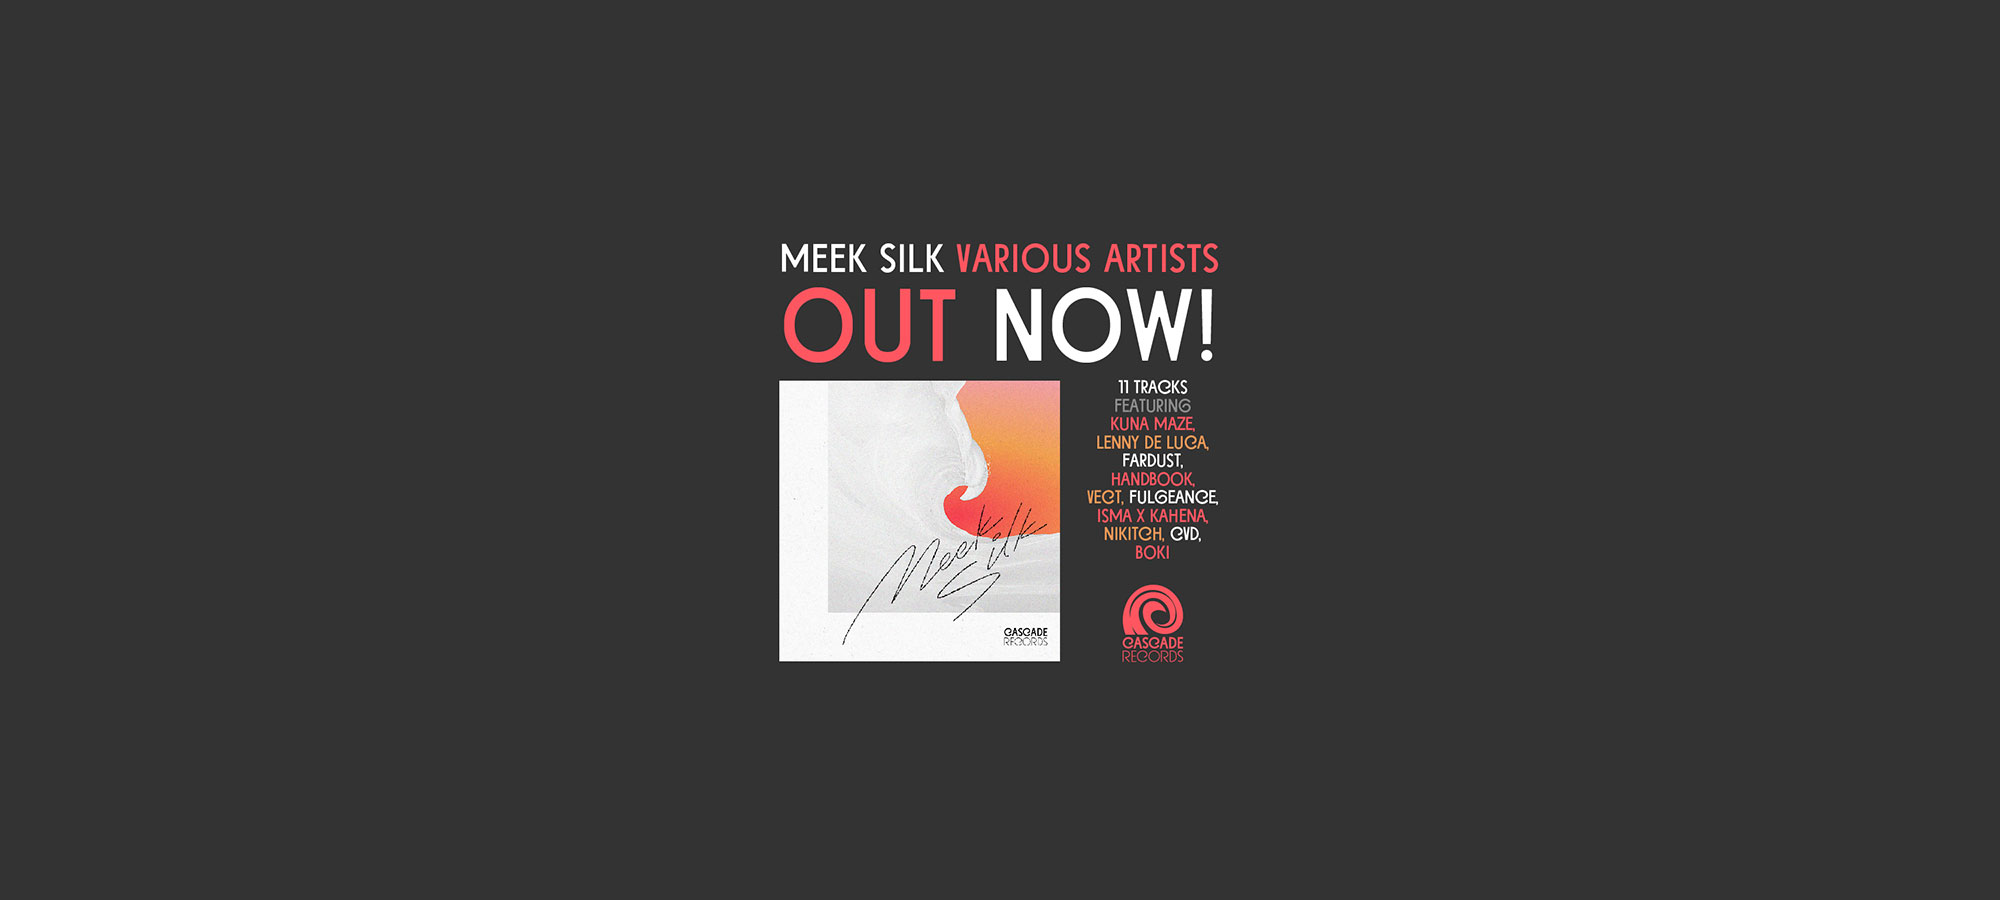 Various Artists - Meek Silk feat. Nikitch, Kuna Maze, Fulgeance, Lenny de Luca - chill electro music hip hop